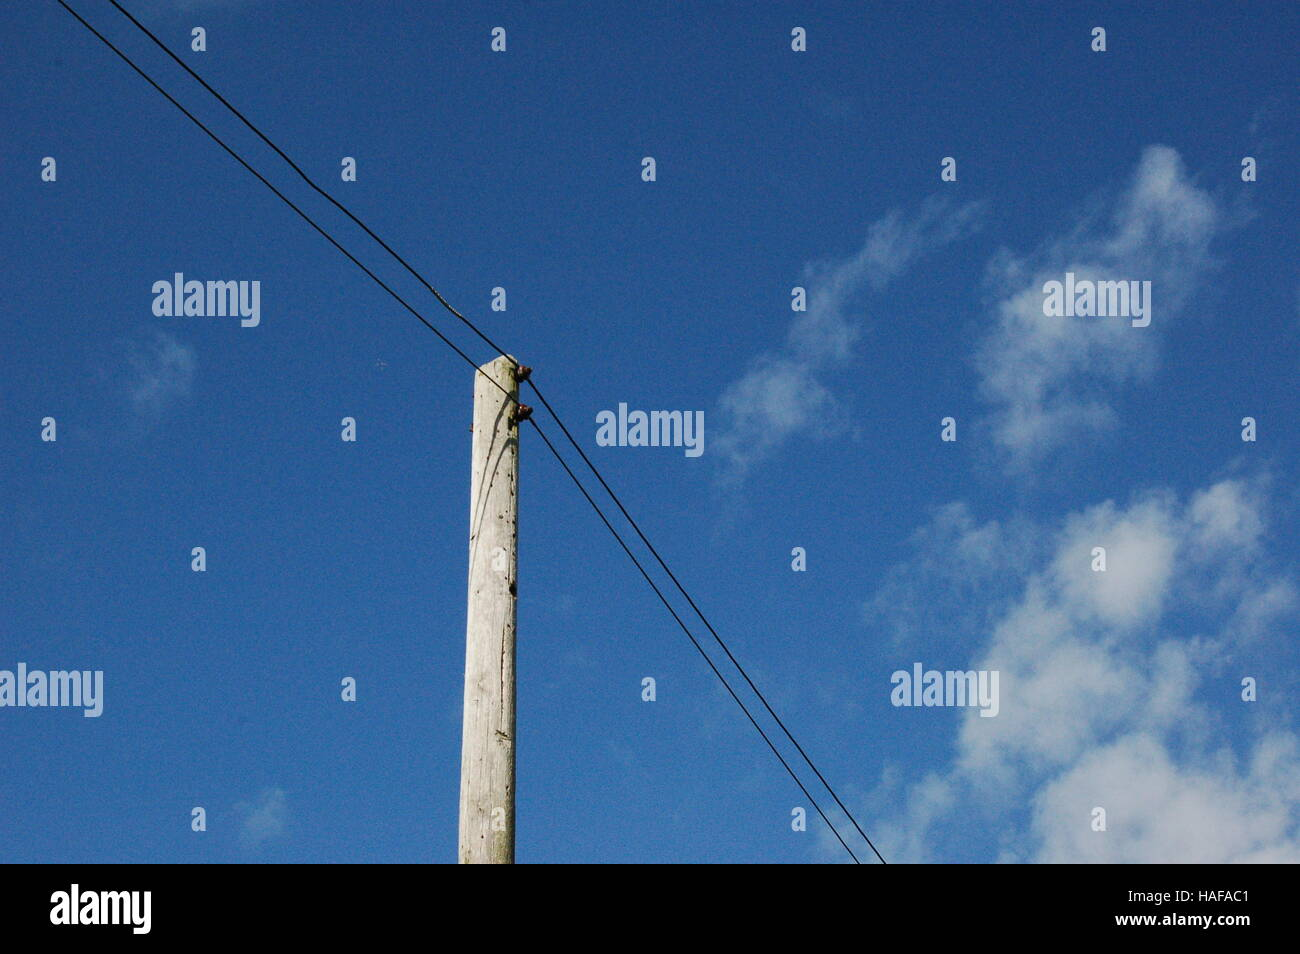 simple lamppost with wires Stock Photo